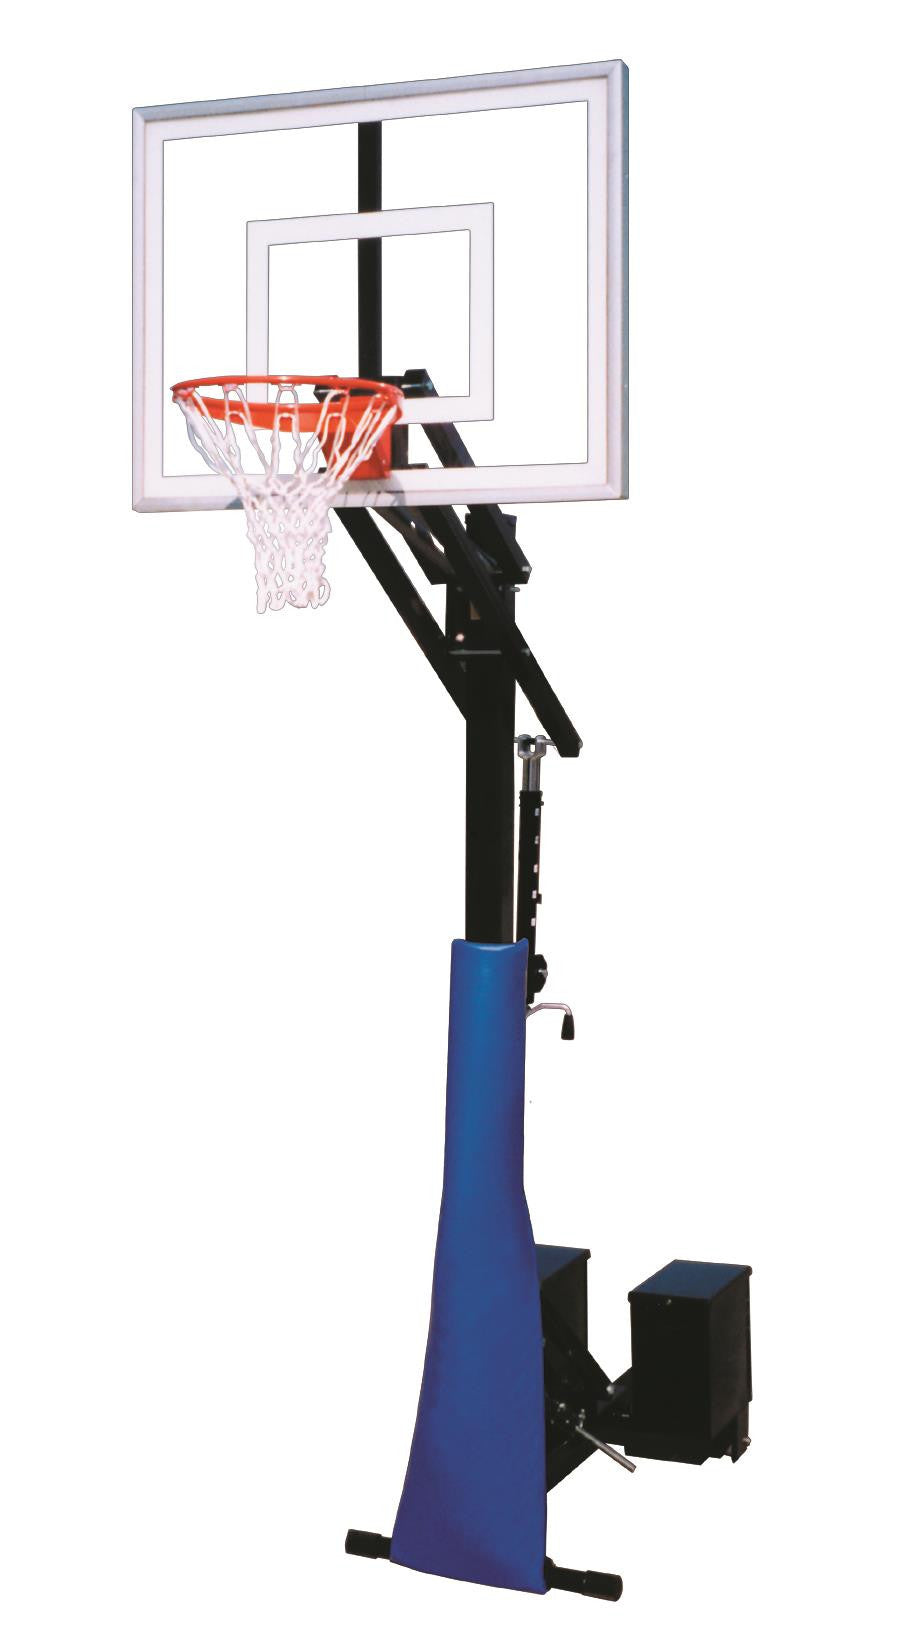 First Team Rolla Jam II Adjustable Portable Basketball Hoop 48 inch Acrylic